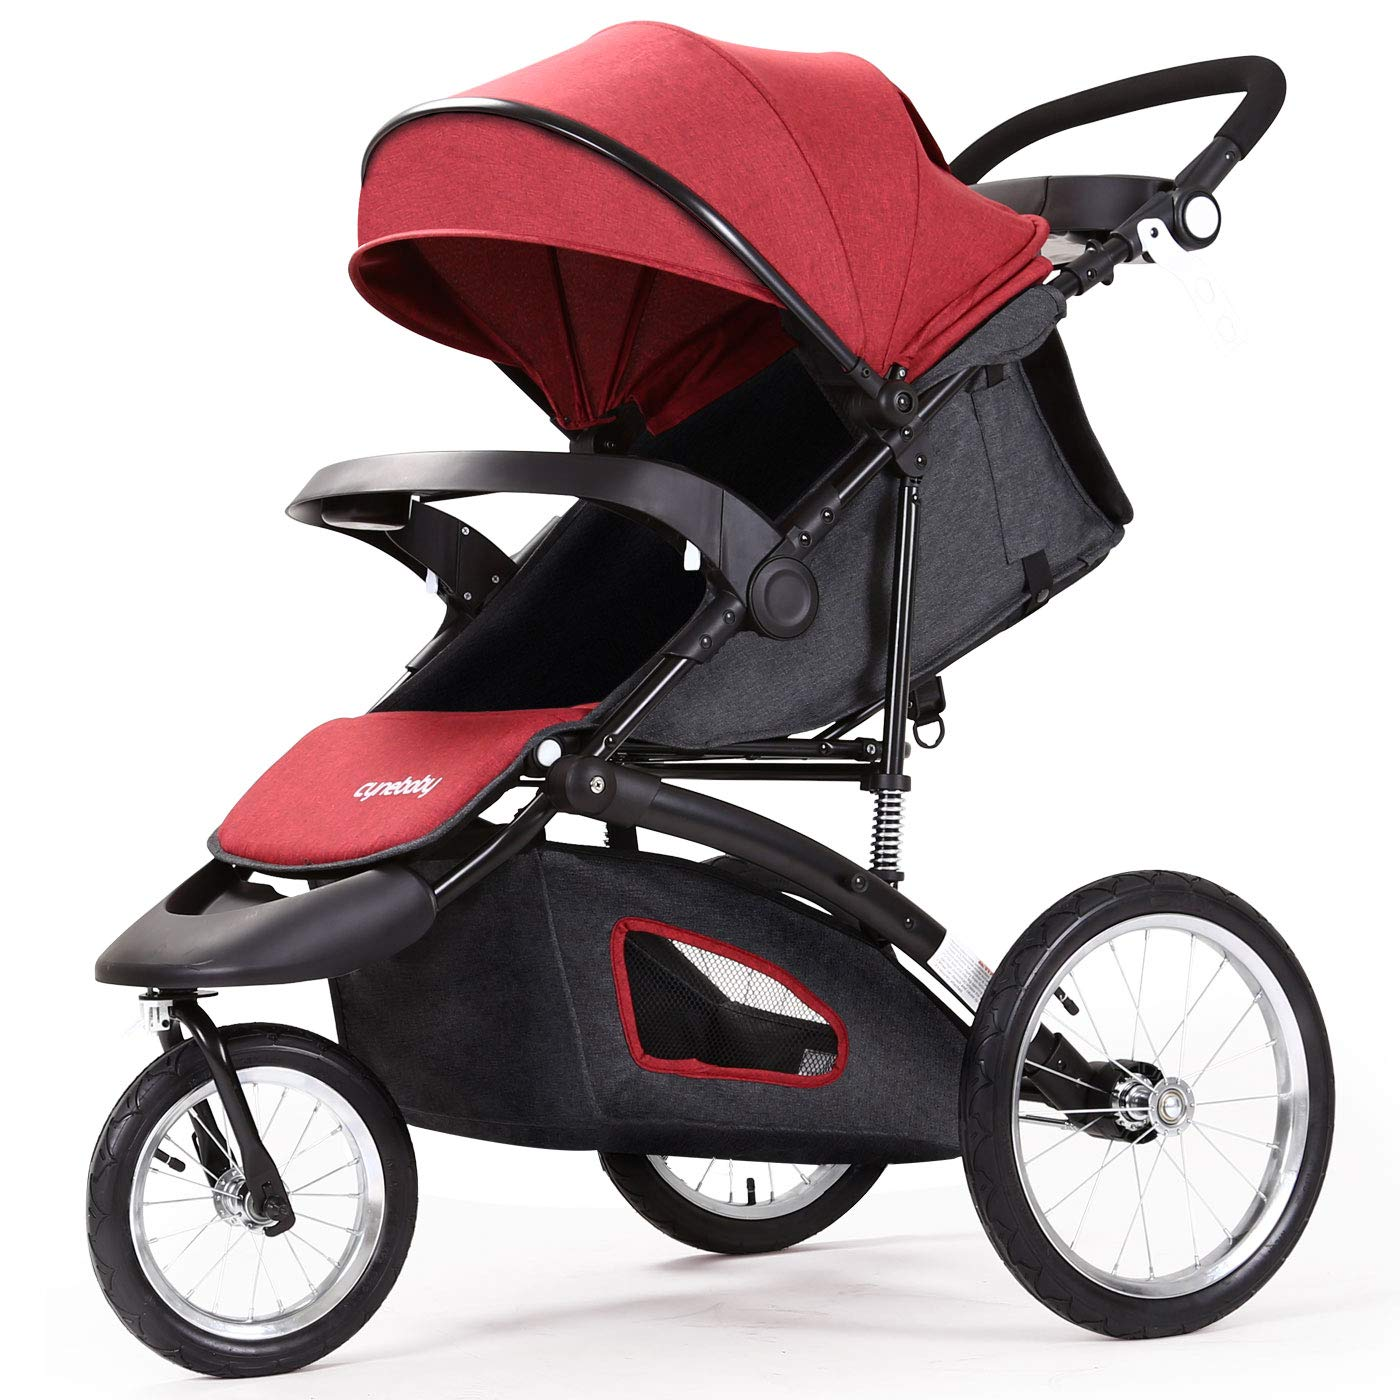 Jogging Stroller Fold City Baby Jogger Travel Citi Jog Strollers Single Toddler Baby Pram Jogging Compact Urban Ultralight Joggers Beby Carriage Pushchair Stroller Travel System by Cynebaby / HAIXIAO (Image #1)